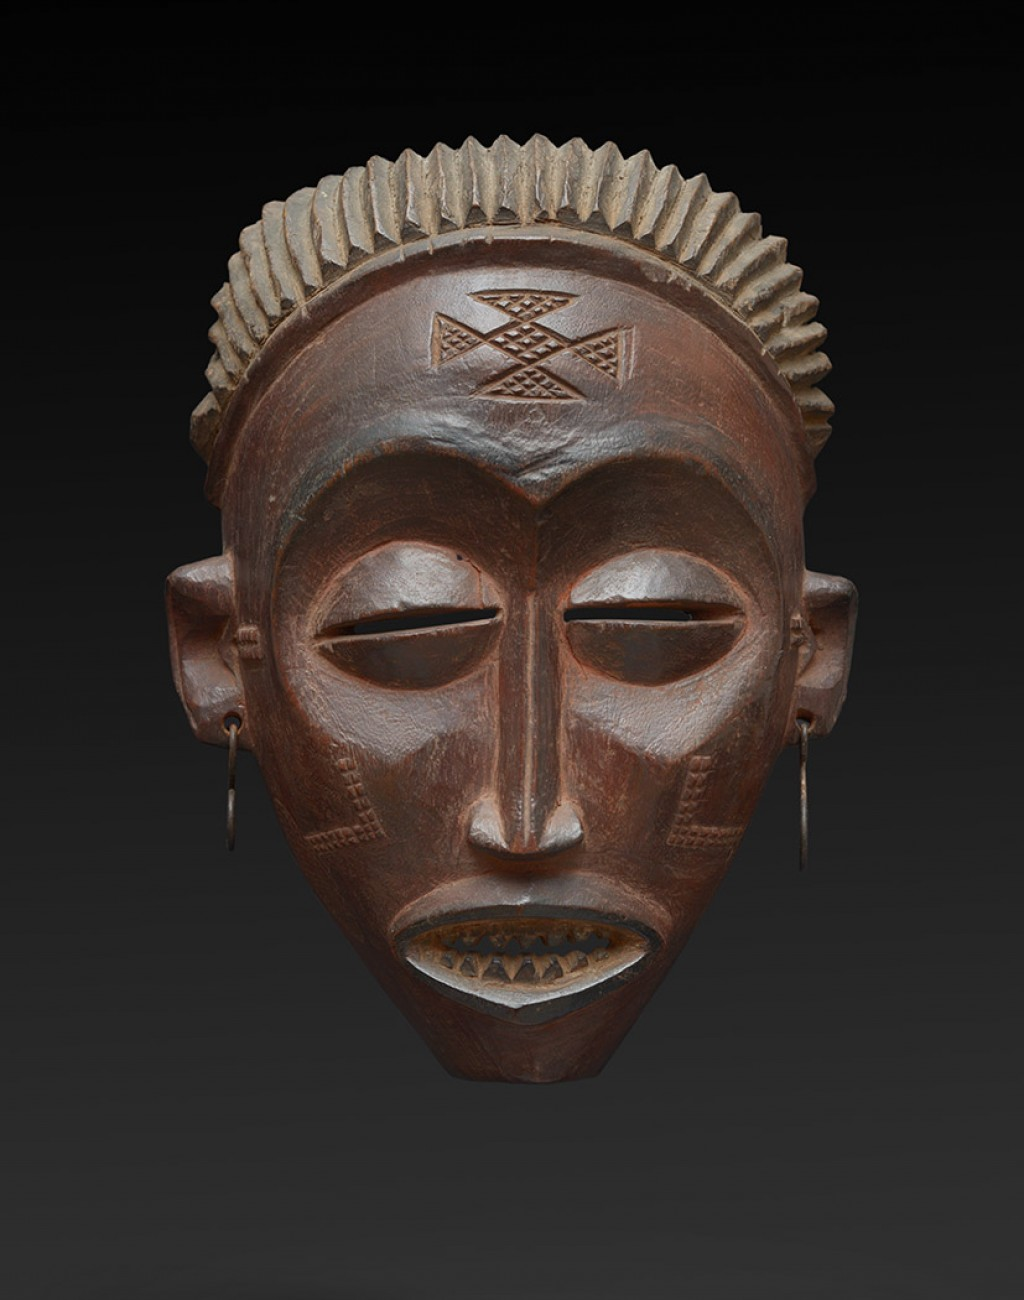 Tchokwe, Democratic Republic of Congo Wood - height 24 cm Provenance: Old French collection